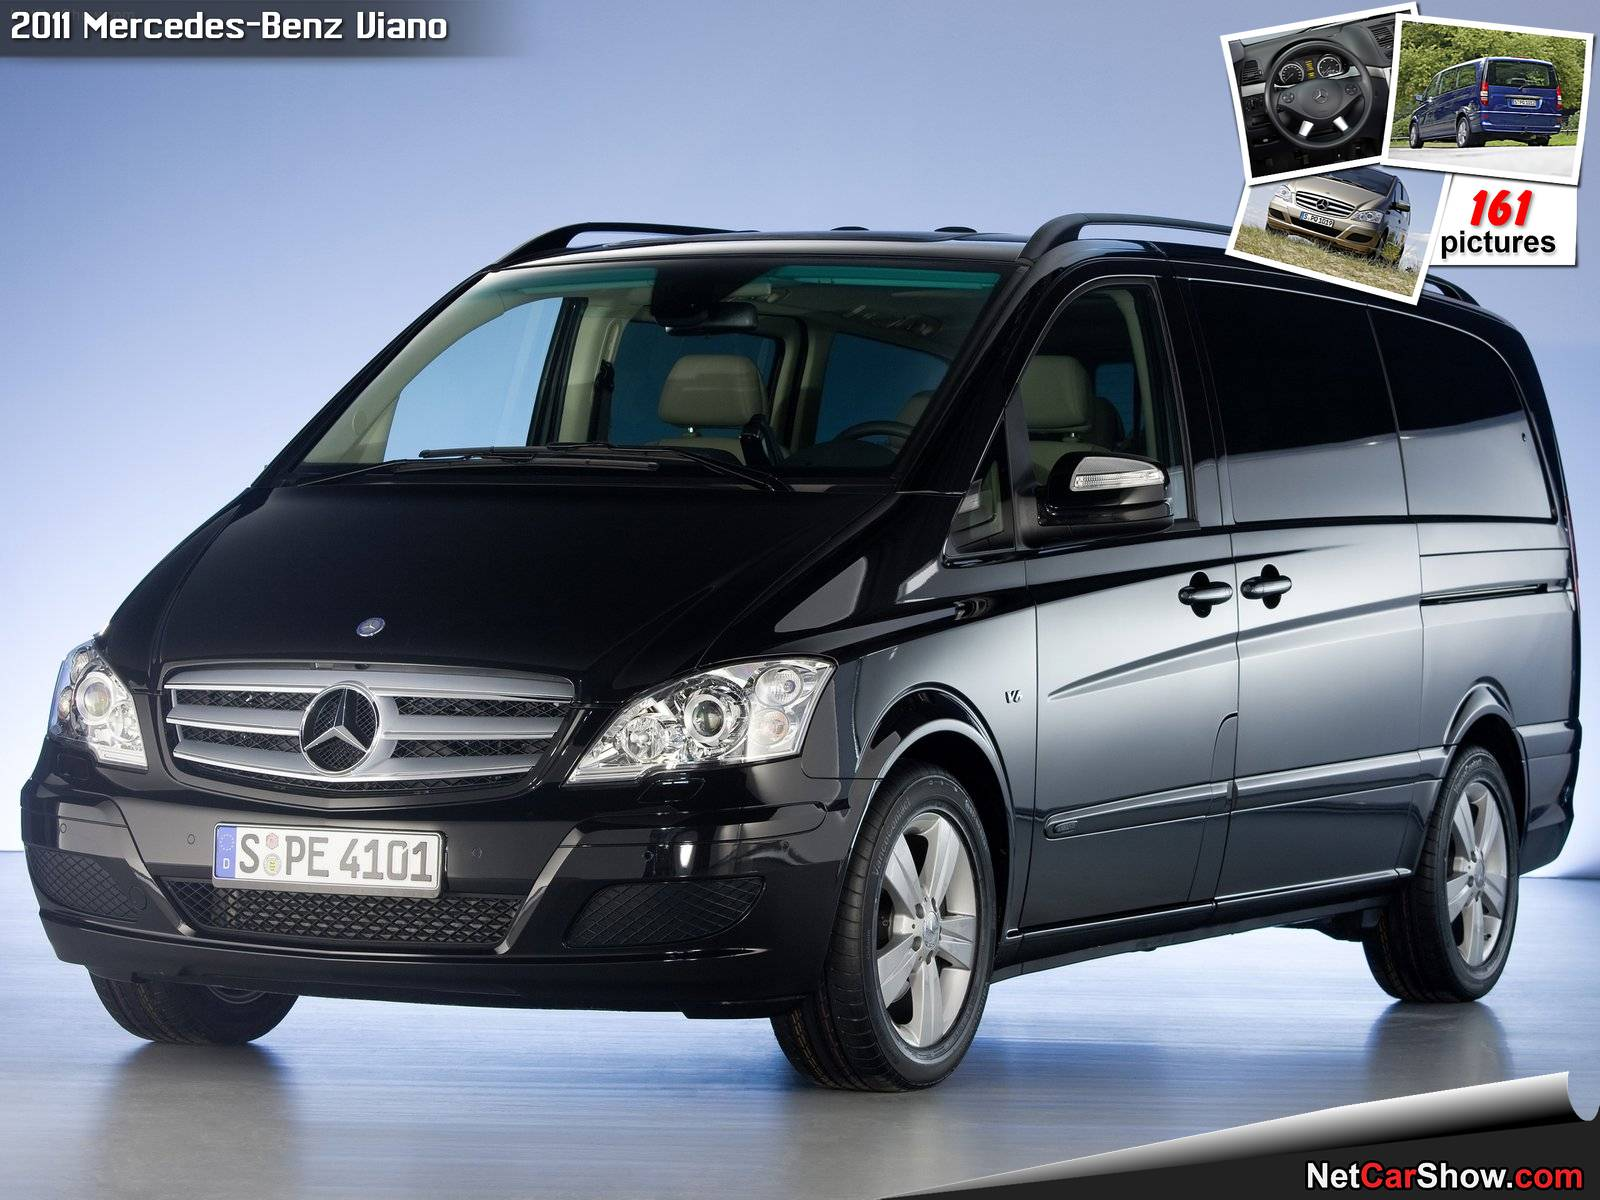 mercedes viano images #9